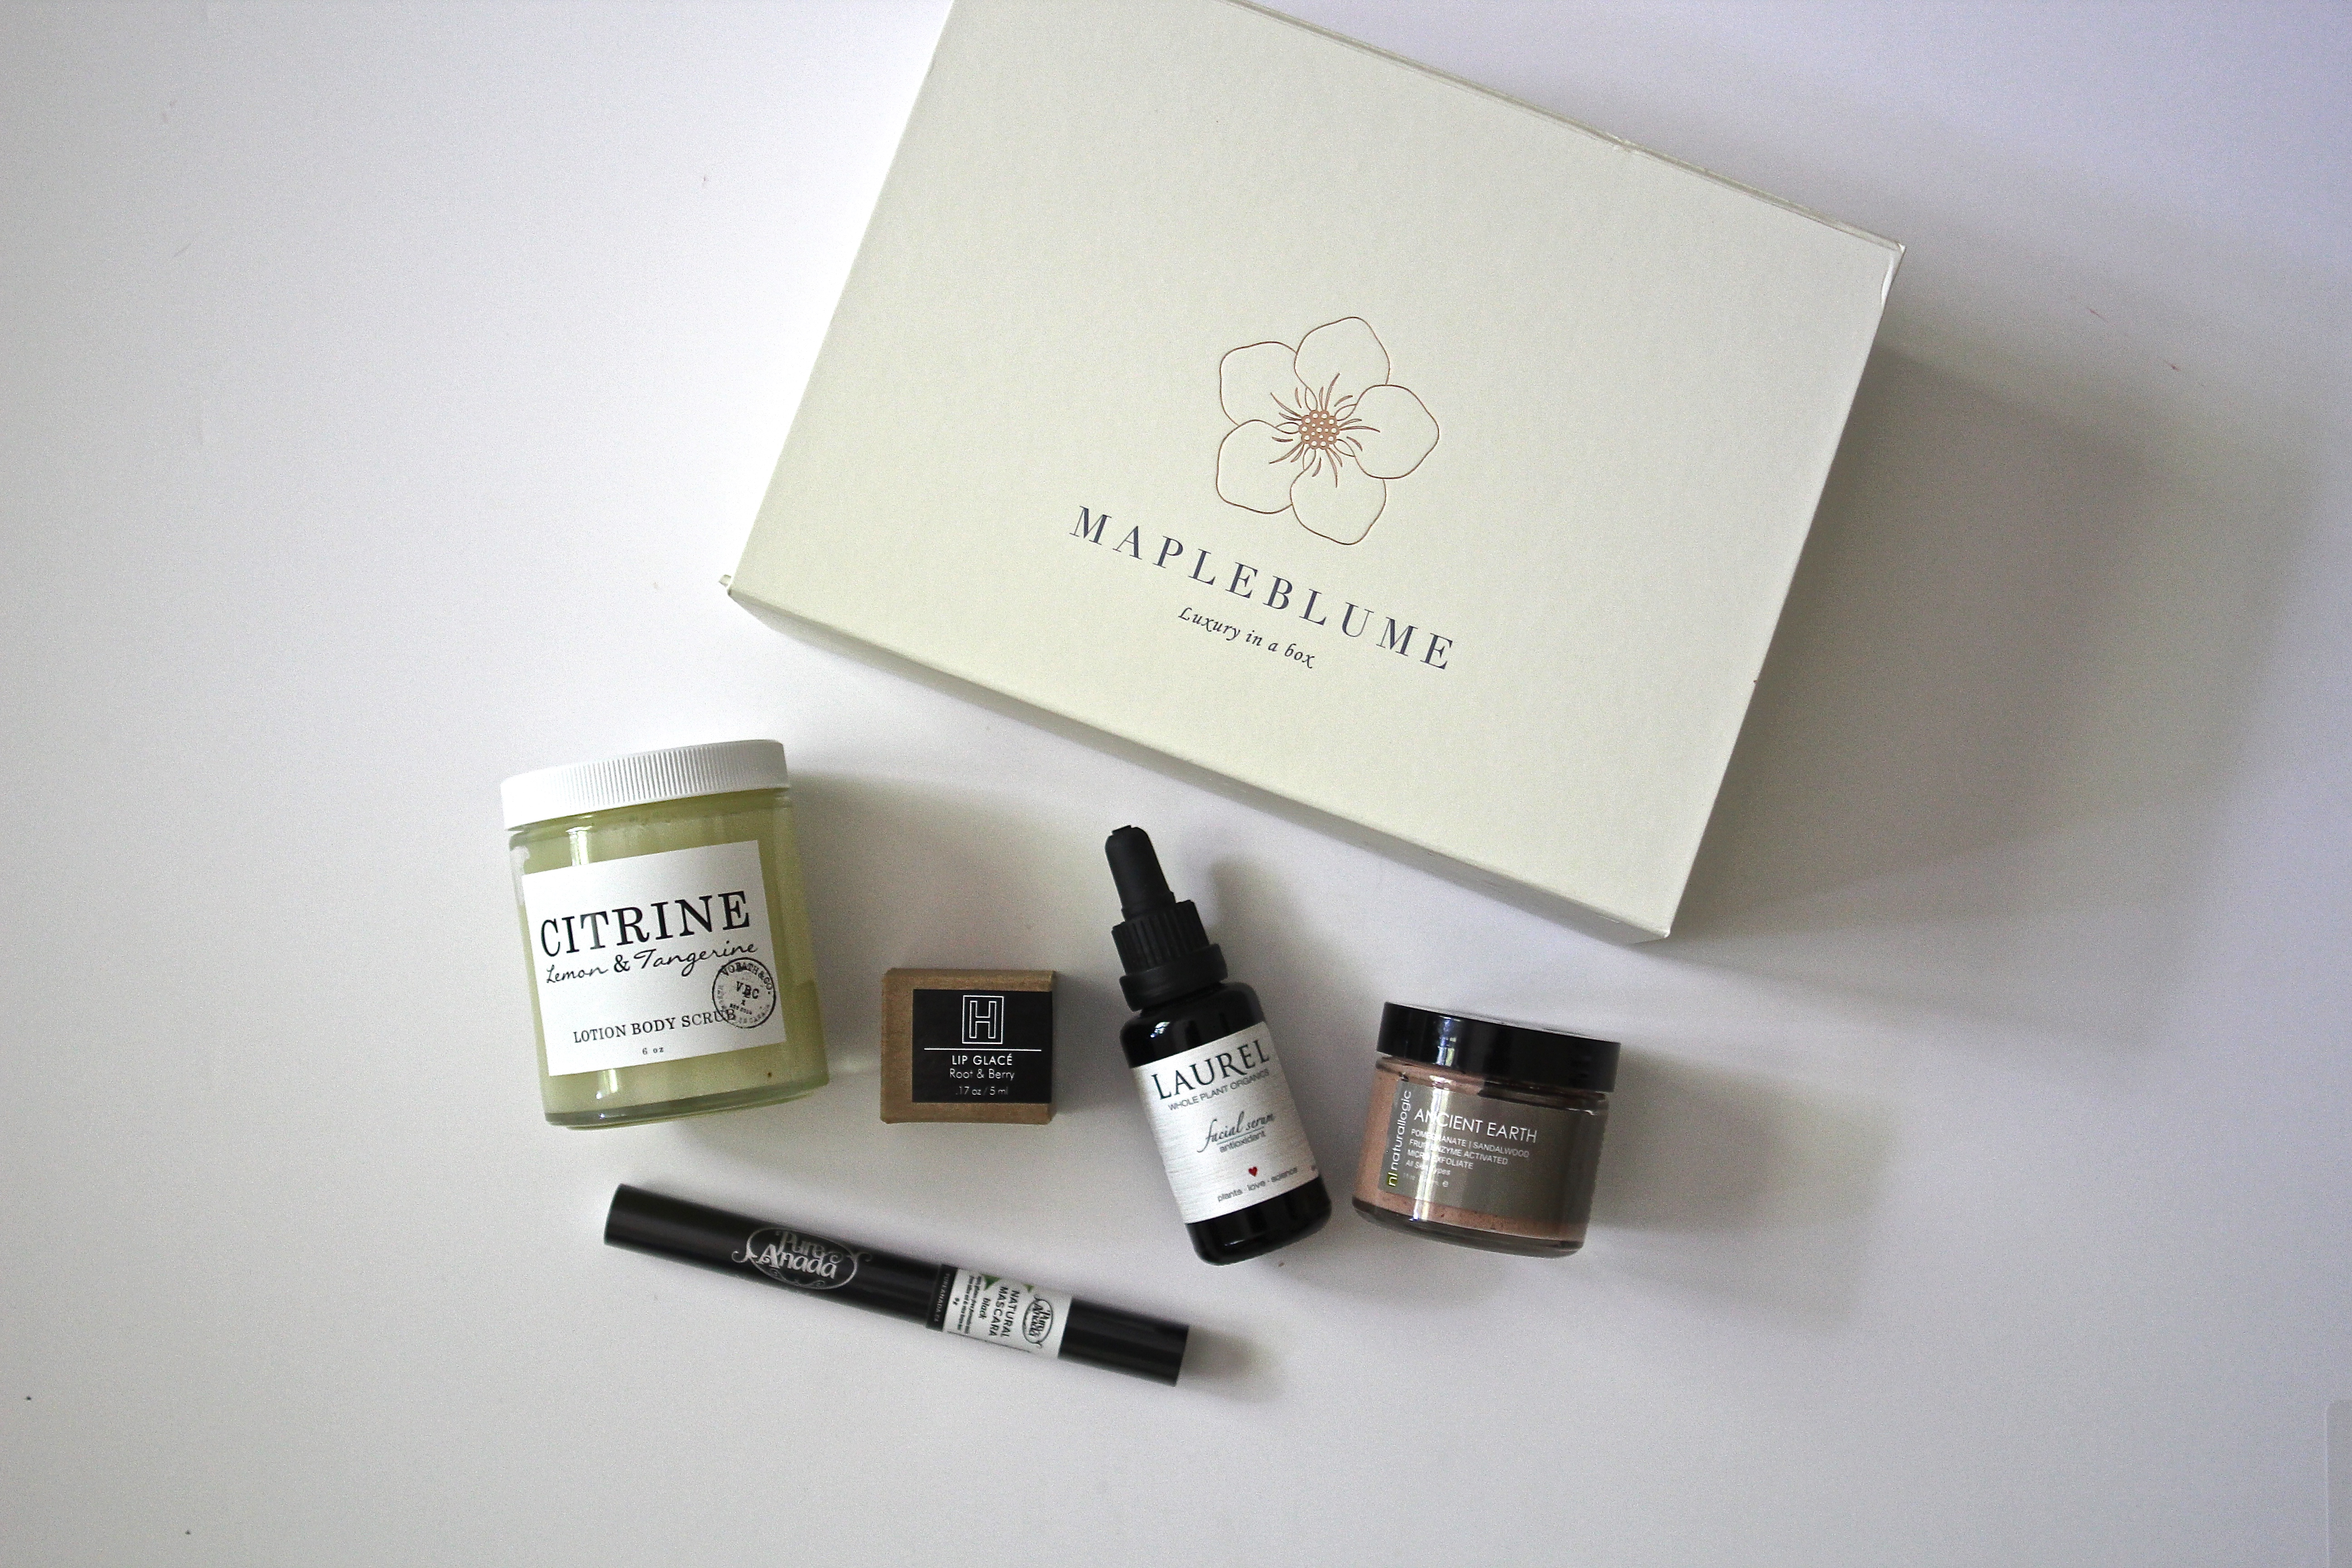 Mapleblume: Luxury In A box